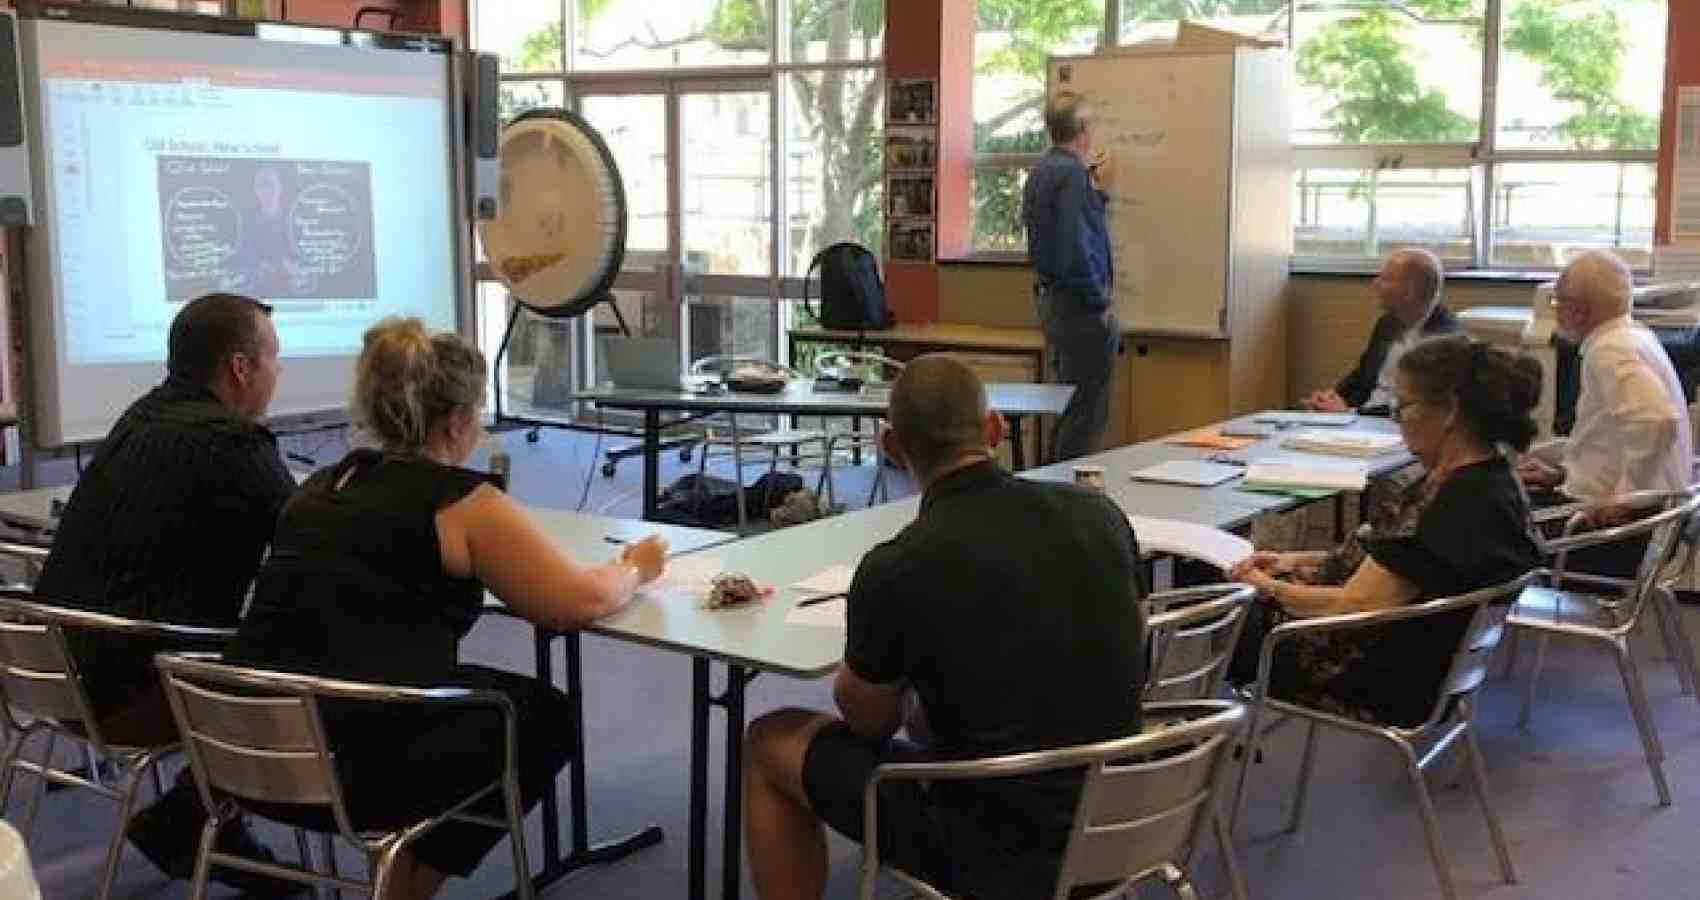 Professional Learning with the University of Newcastle